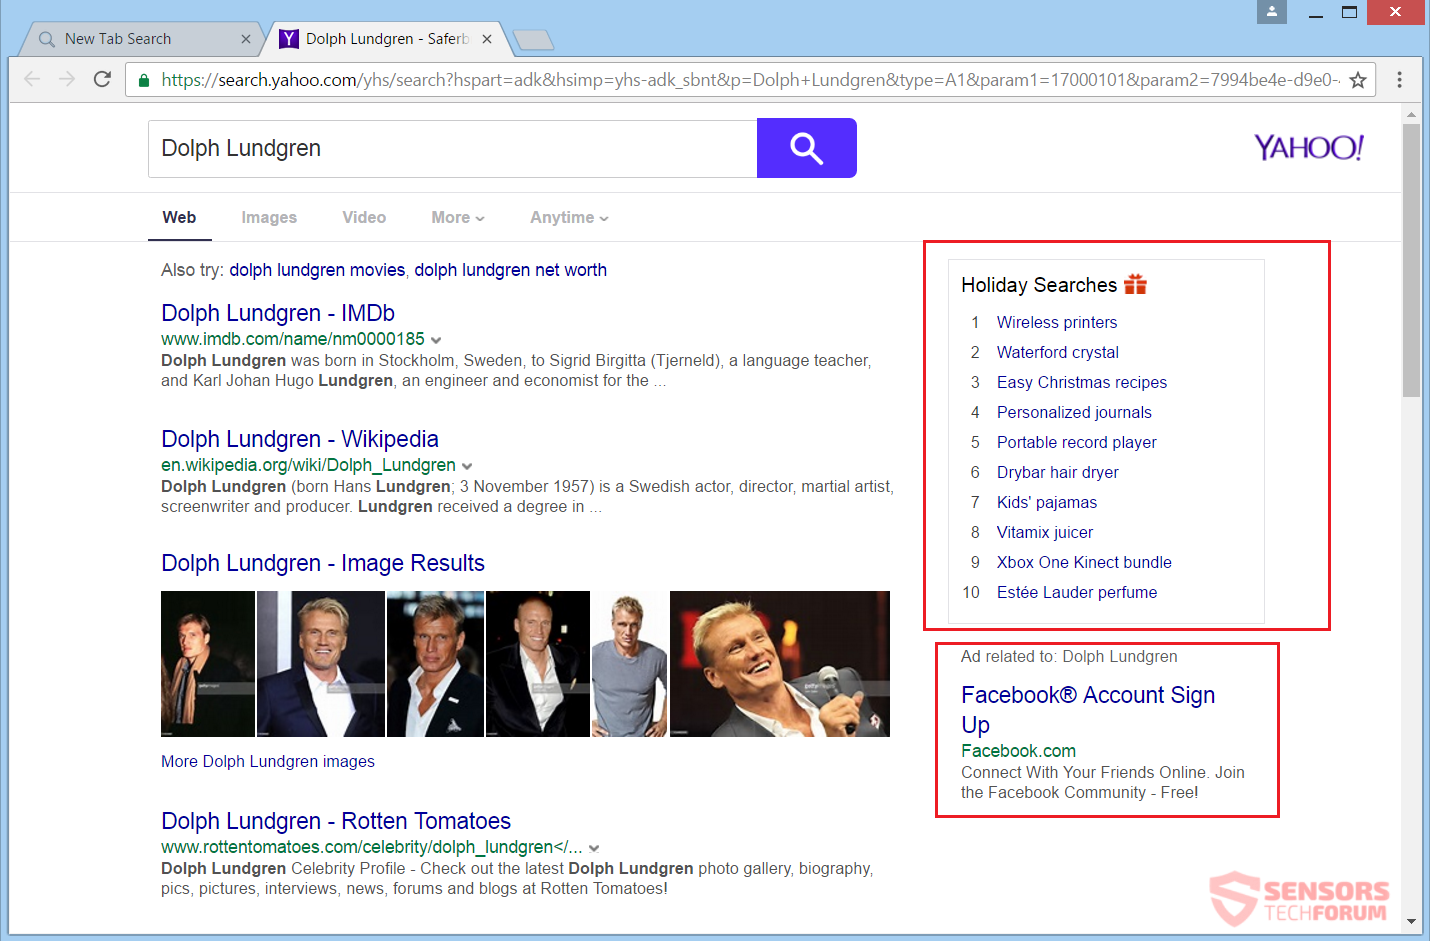 stf-search-memethat-co-meme-that-browser-hijacker-redirect-dolph-lundgren-search-results